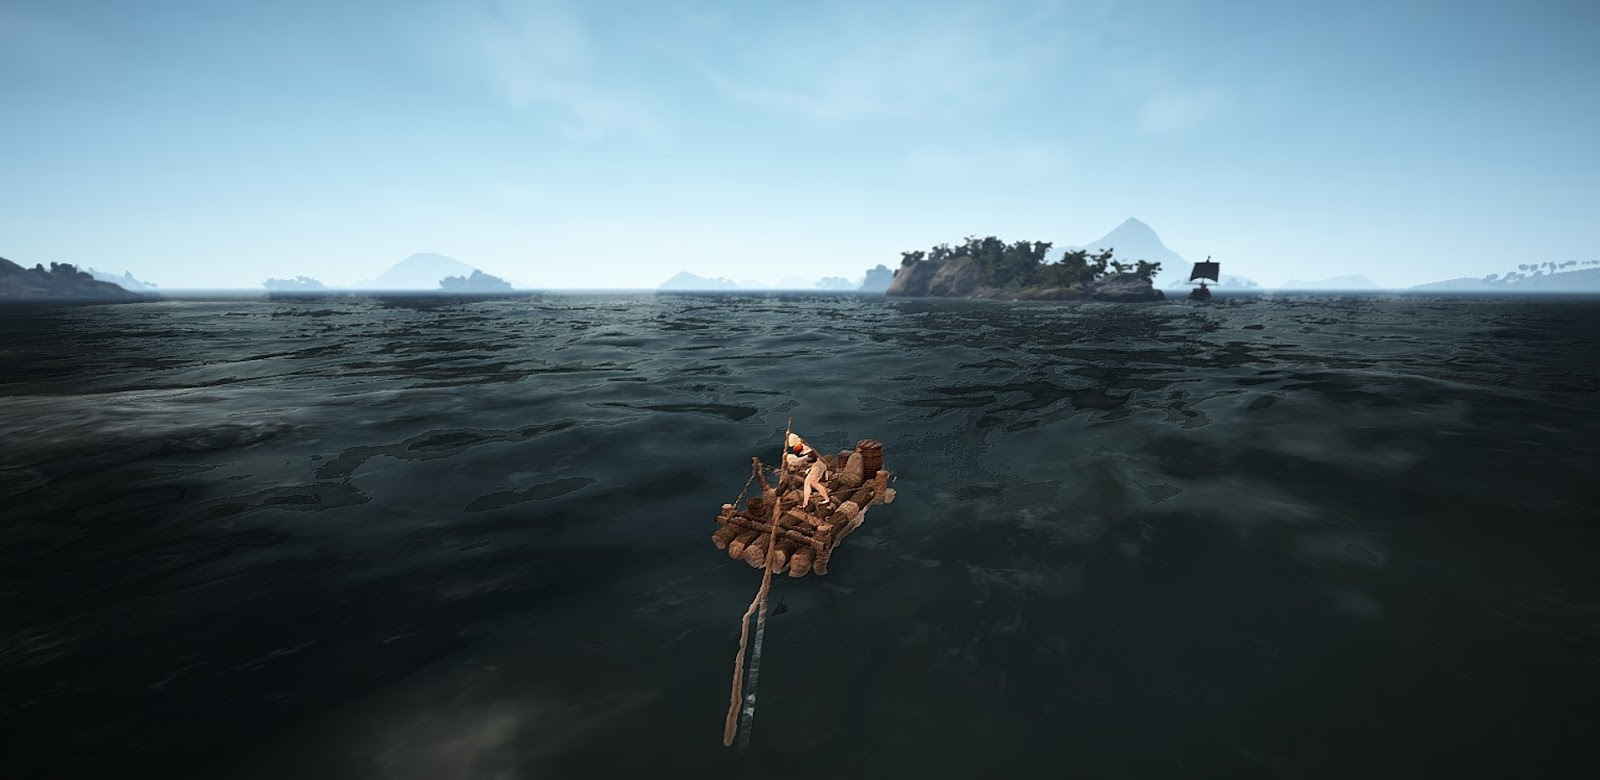 black desert online fishing guide